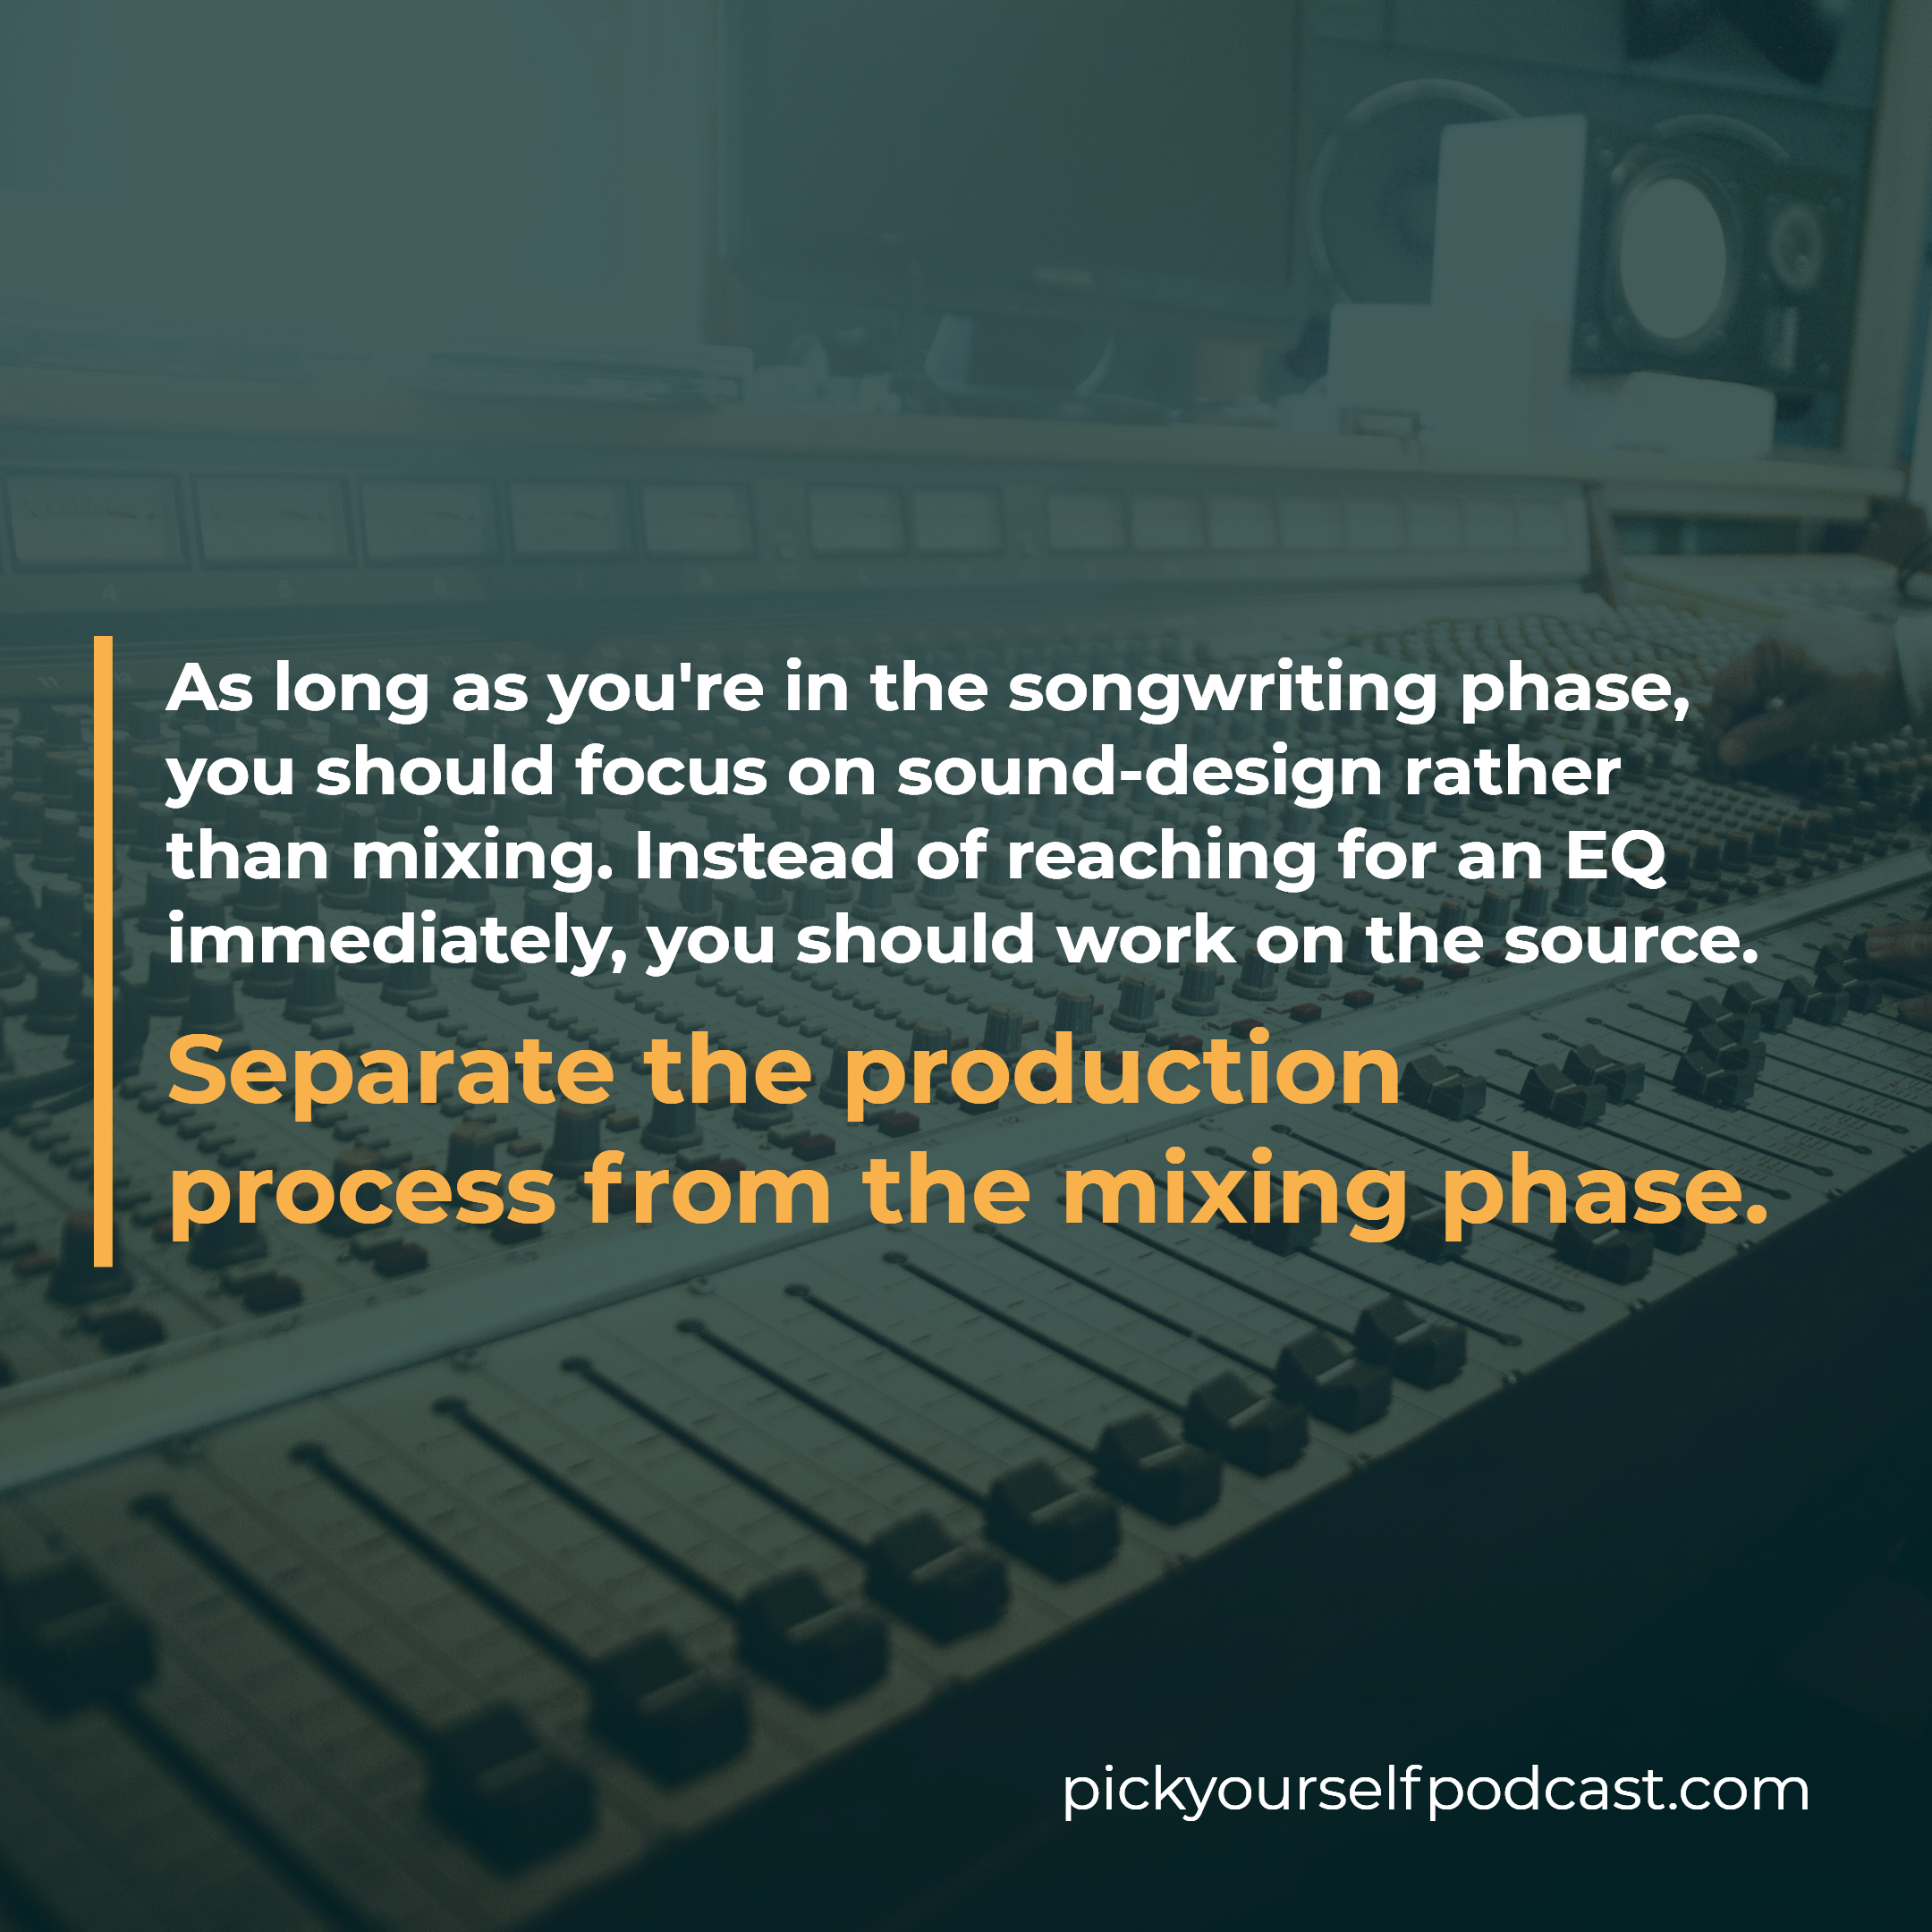 Finish more songs visual 03. It says you need to separate the production process from the mixing phase.